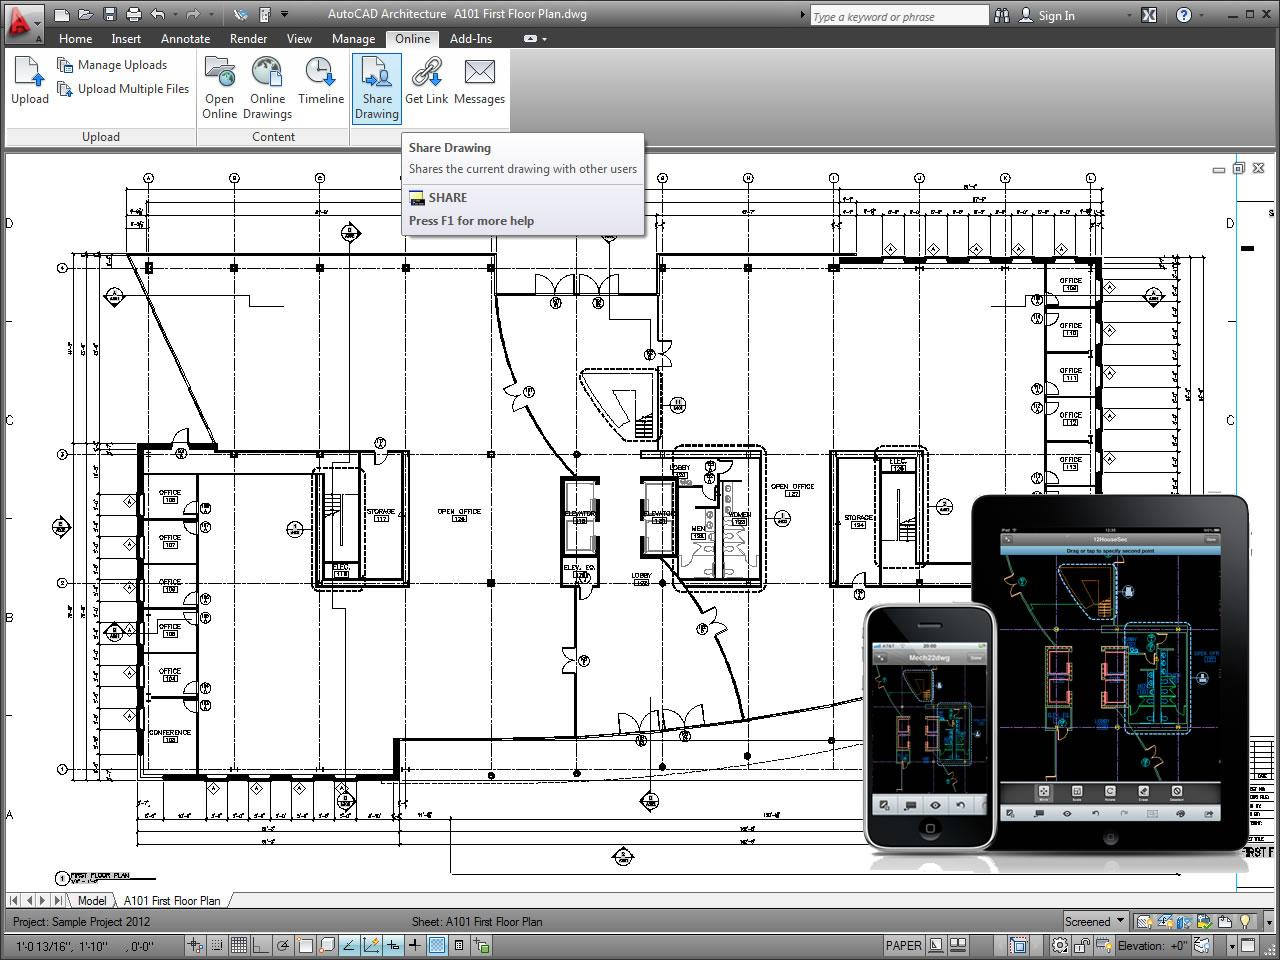 Autocad architecture 2012 jtb world Building design tool